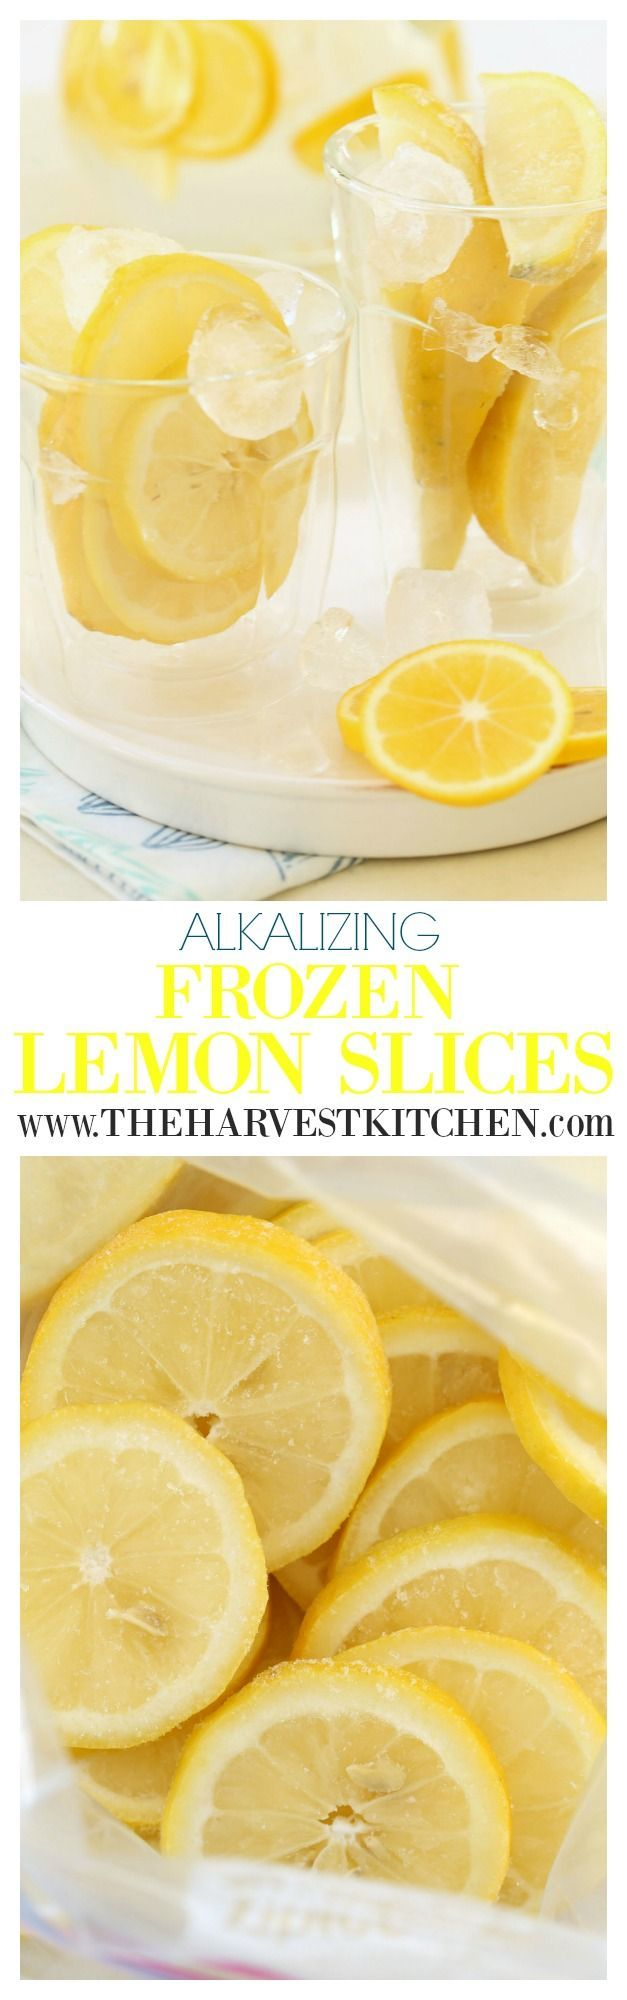 Add these Alkalizing Frozen Lemon Slices to water or herbal or green tea for added alkalizing, detoxifying and other nutritional benefits.